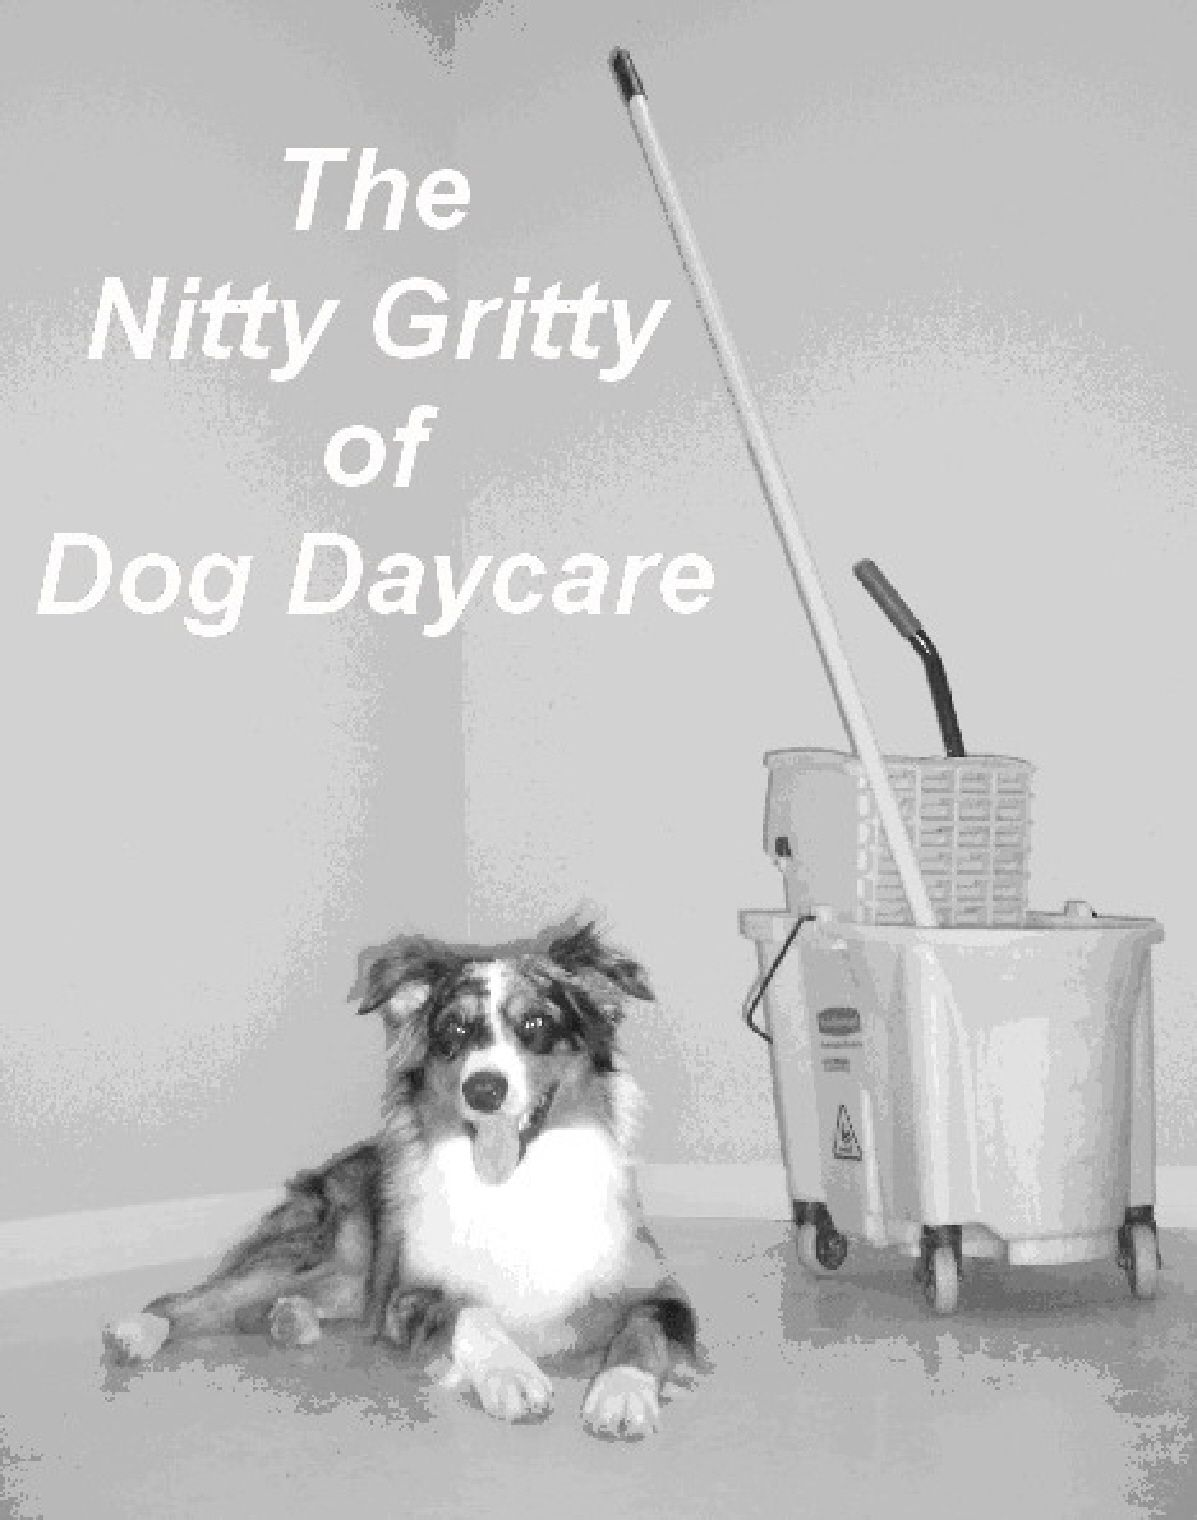 The Nitty Gritty Of Dog Daycare Dog Daycare Dog Boarding And Dog Grooming Paws Dog Daycare Dog Boarding Dog Grooming